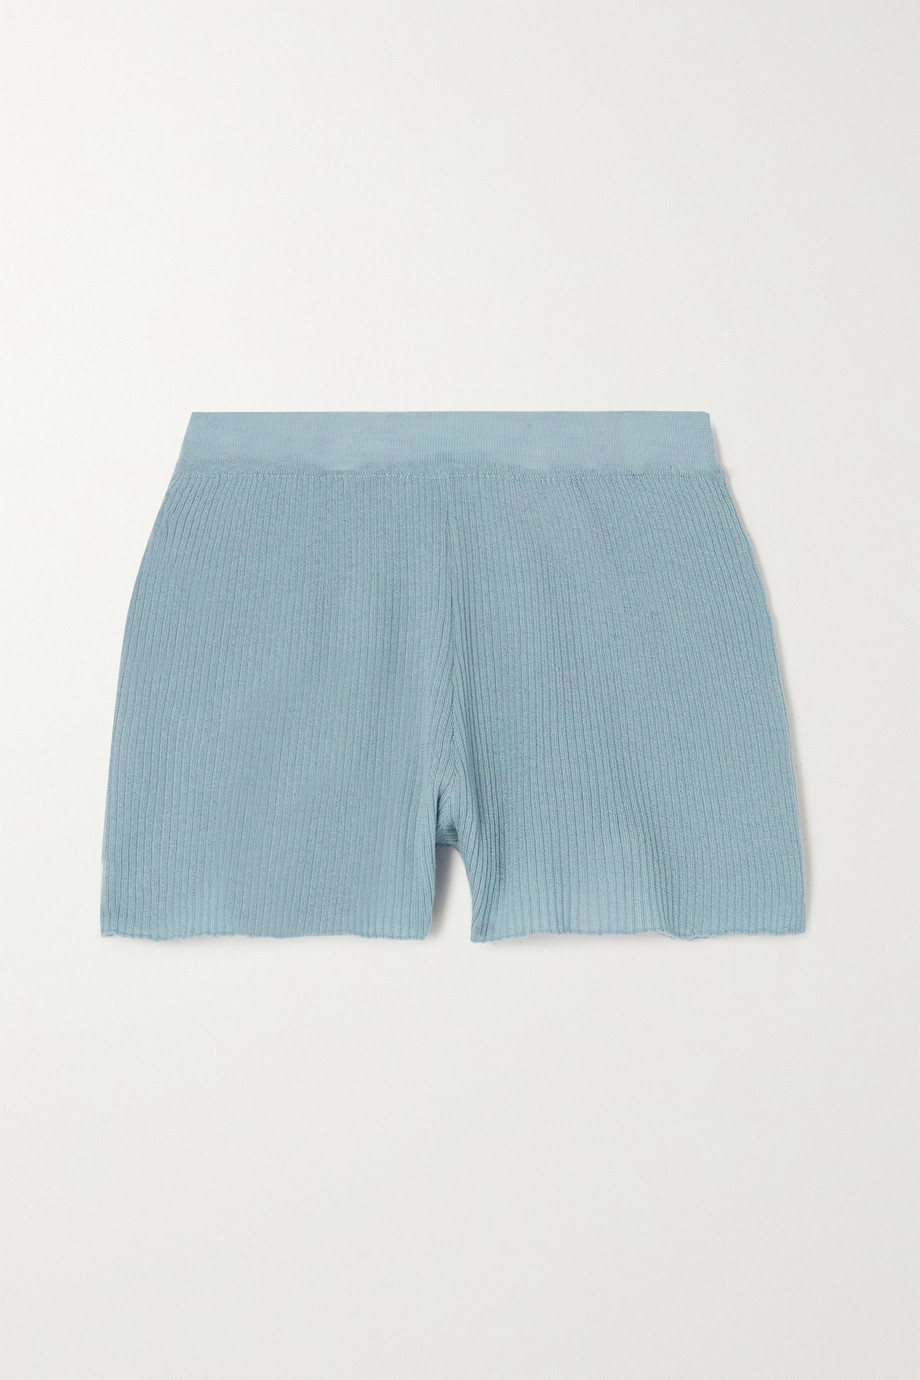 SABLYN Gia ribbed cashmere shorts